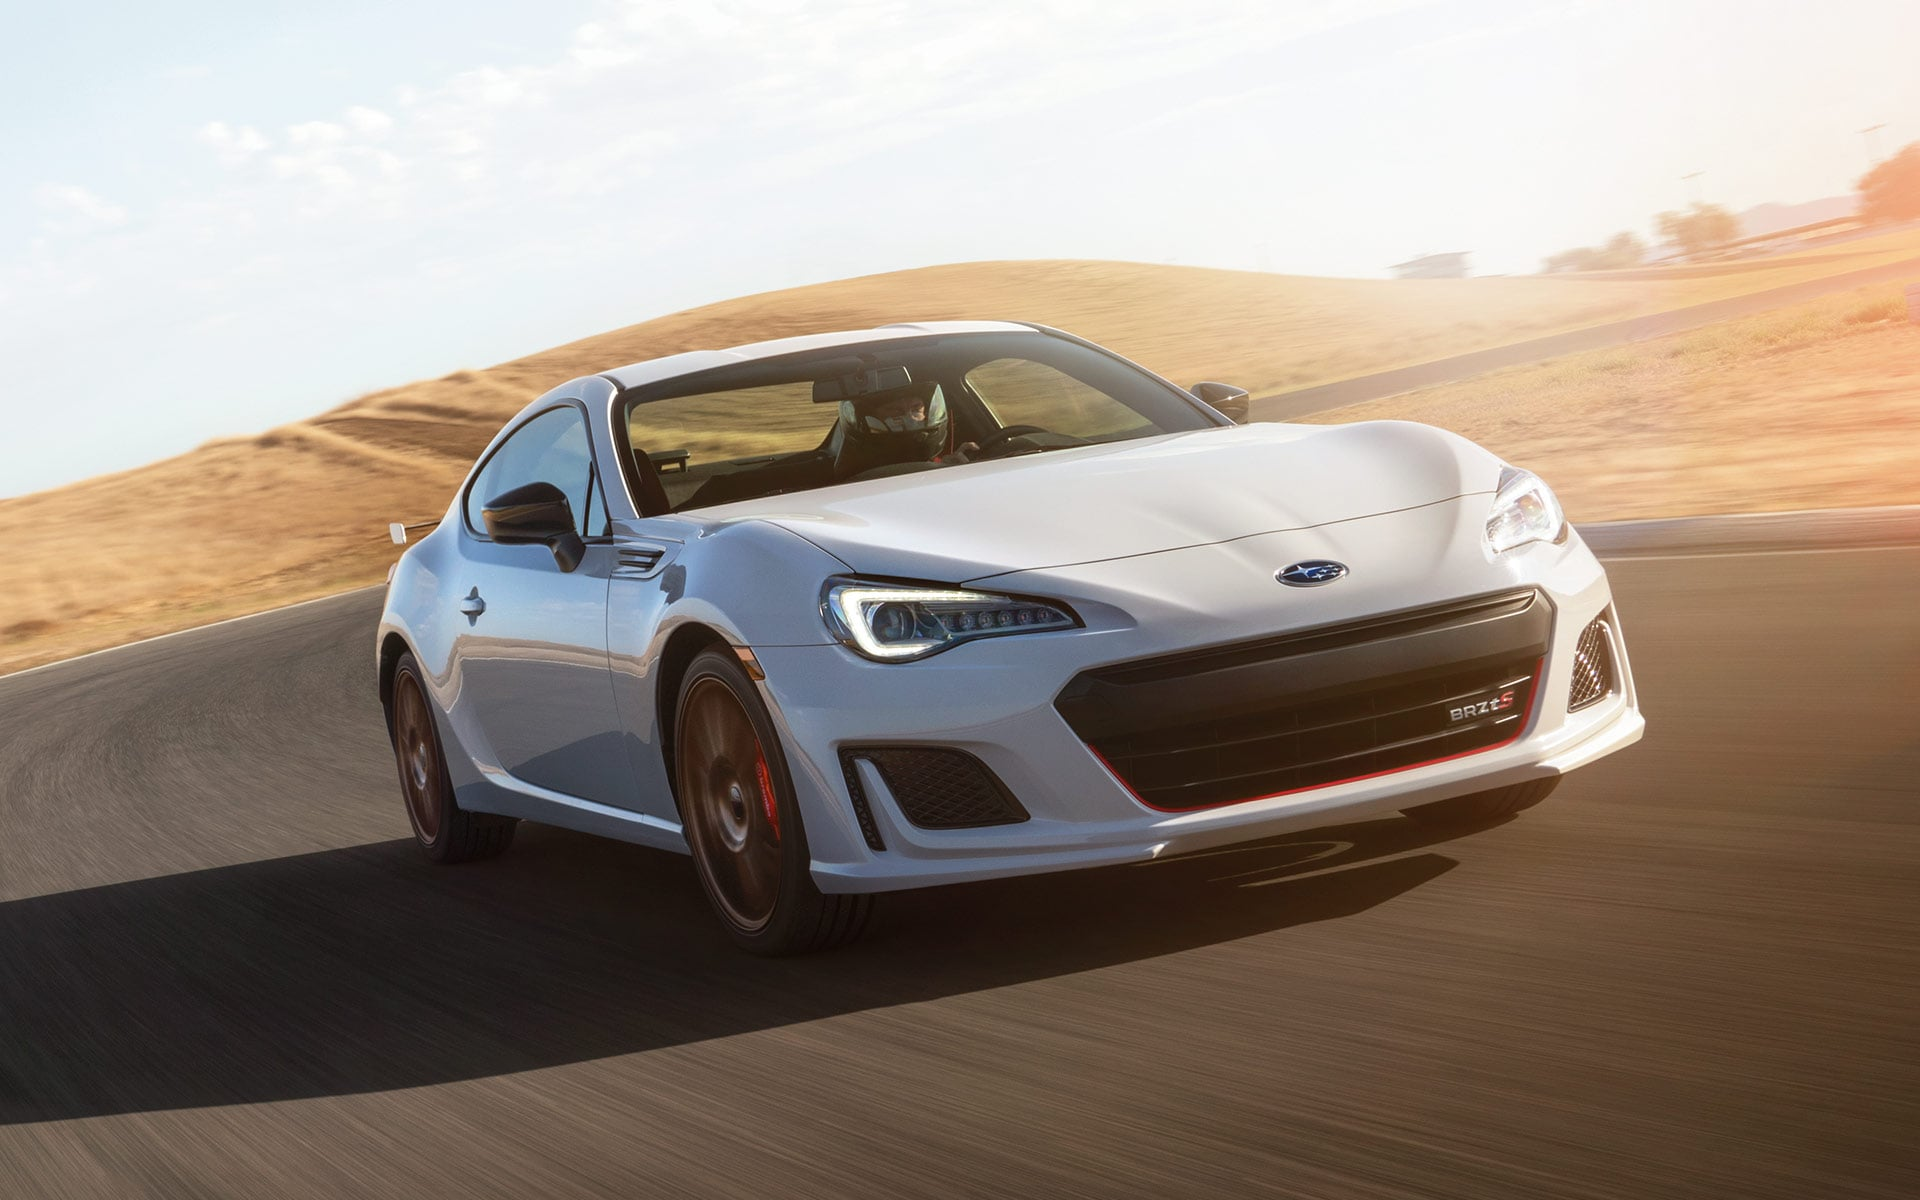 2020 BRZ tS driving on a road in the country